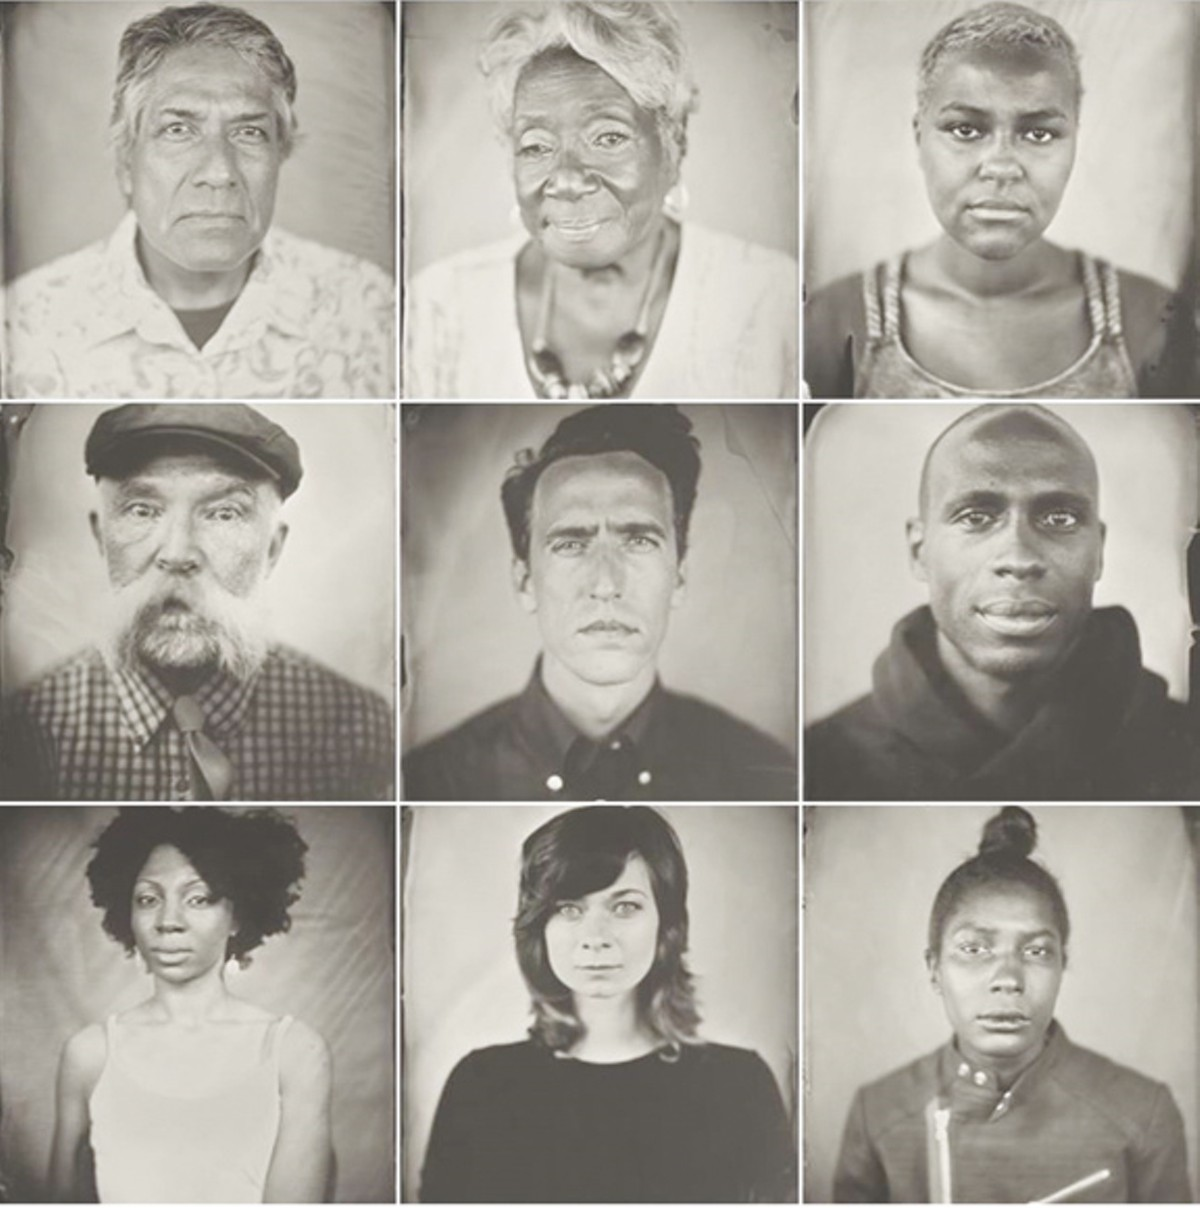 A collection of Clevelanders' tintype portraits captured by Keliy Anderson-Staley during her visit to Cleveland. Courtesy of the artist.